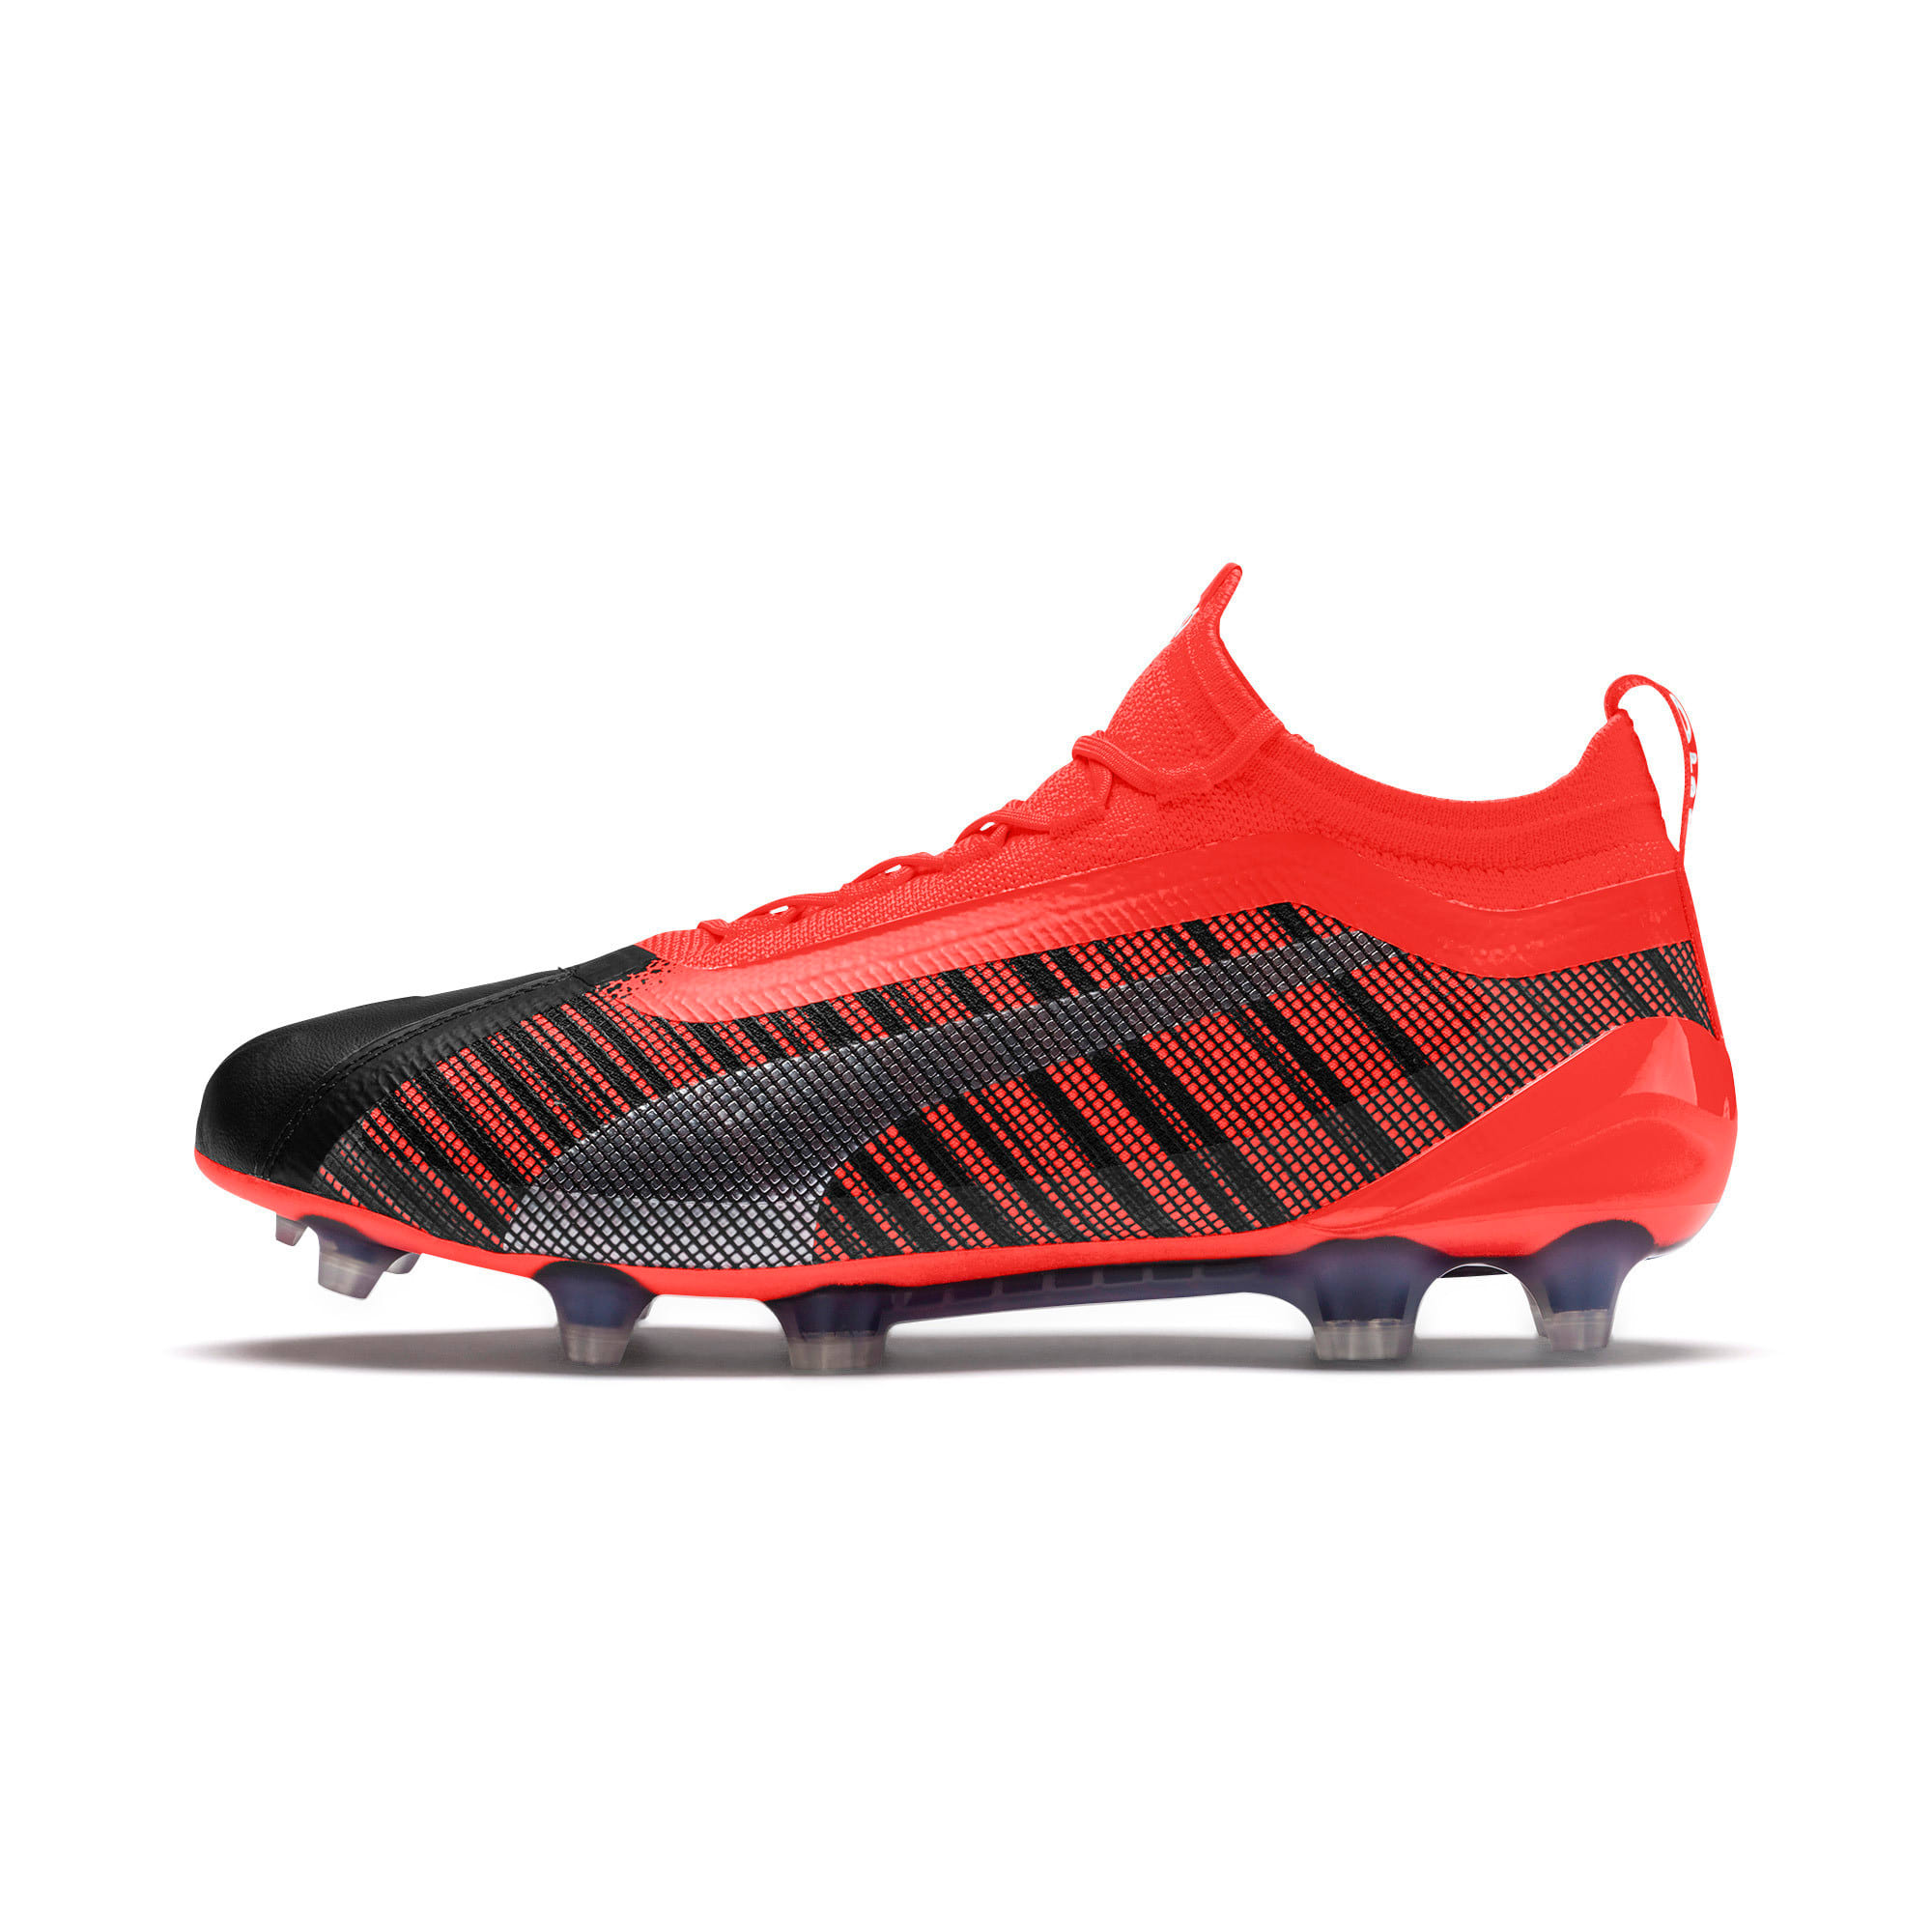 Thumbnail 1 of PUMA ONE 5.1 evoKNIT FG/AG Herren Fußballschuhe, Black-Nrgy Red-Aged Silver, medium